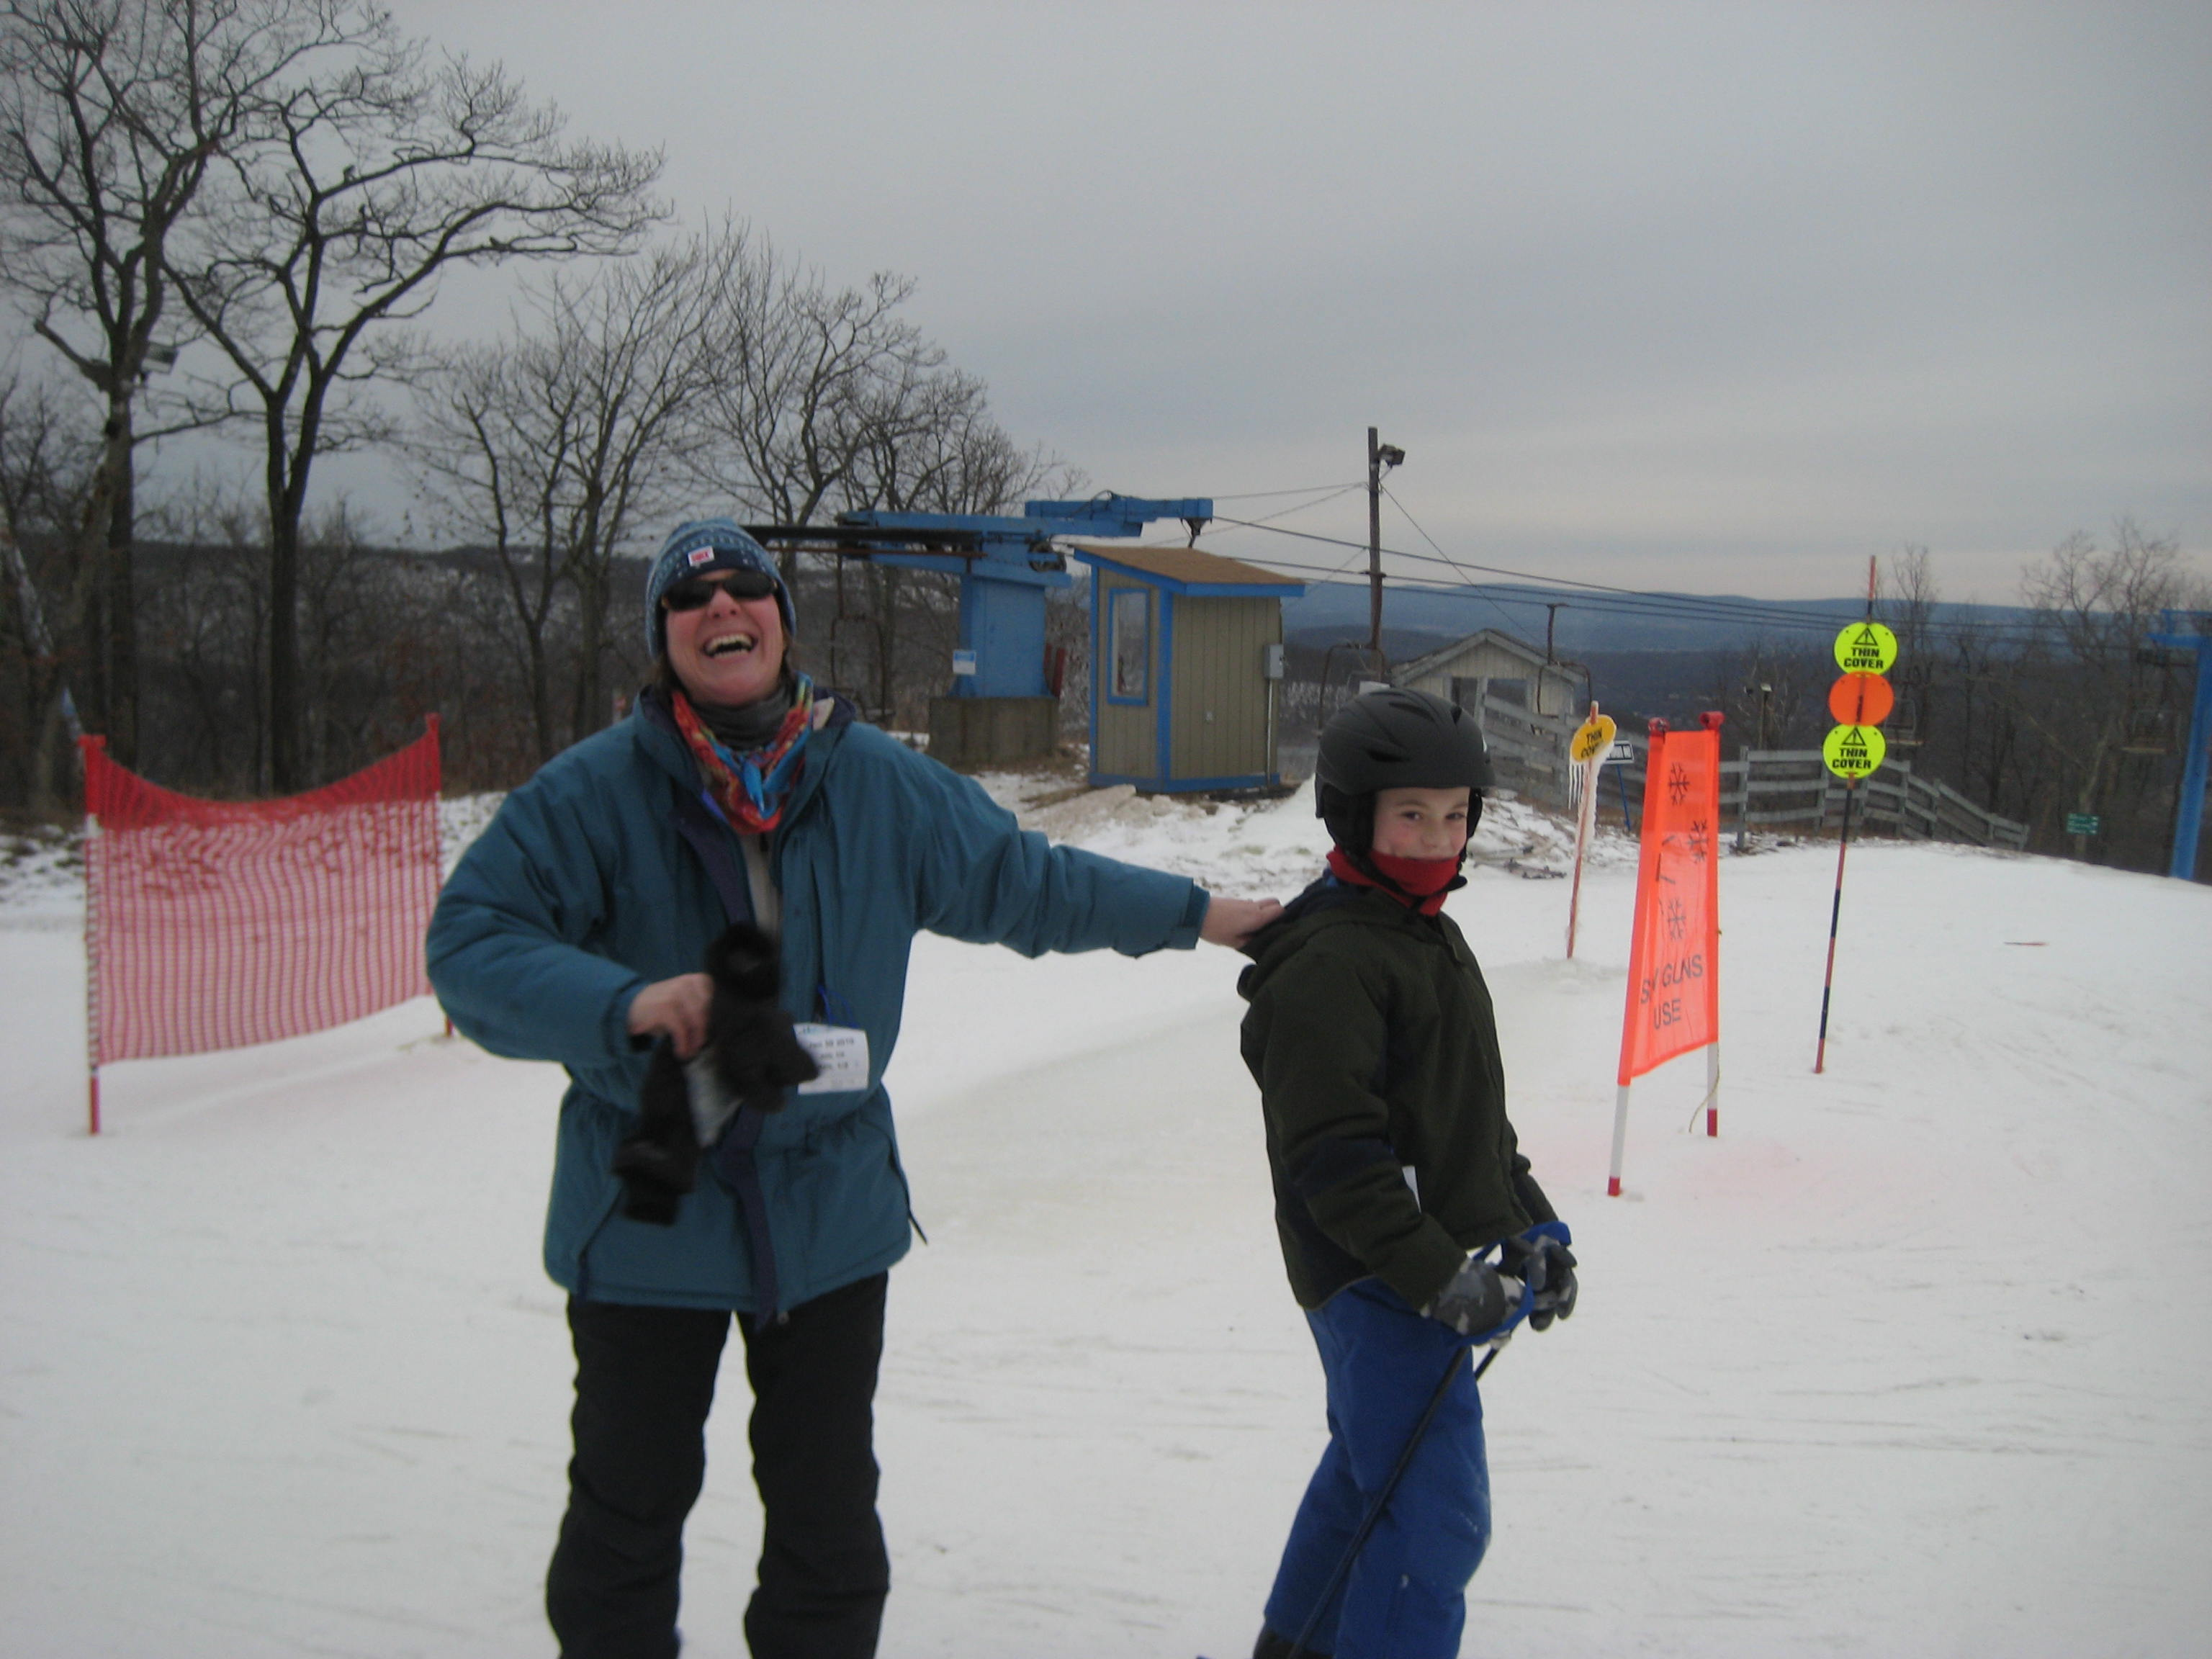 Also, that I didn't get my skiis waxed, or I'd have been half-way down the trail, backwards and giggling.